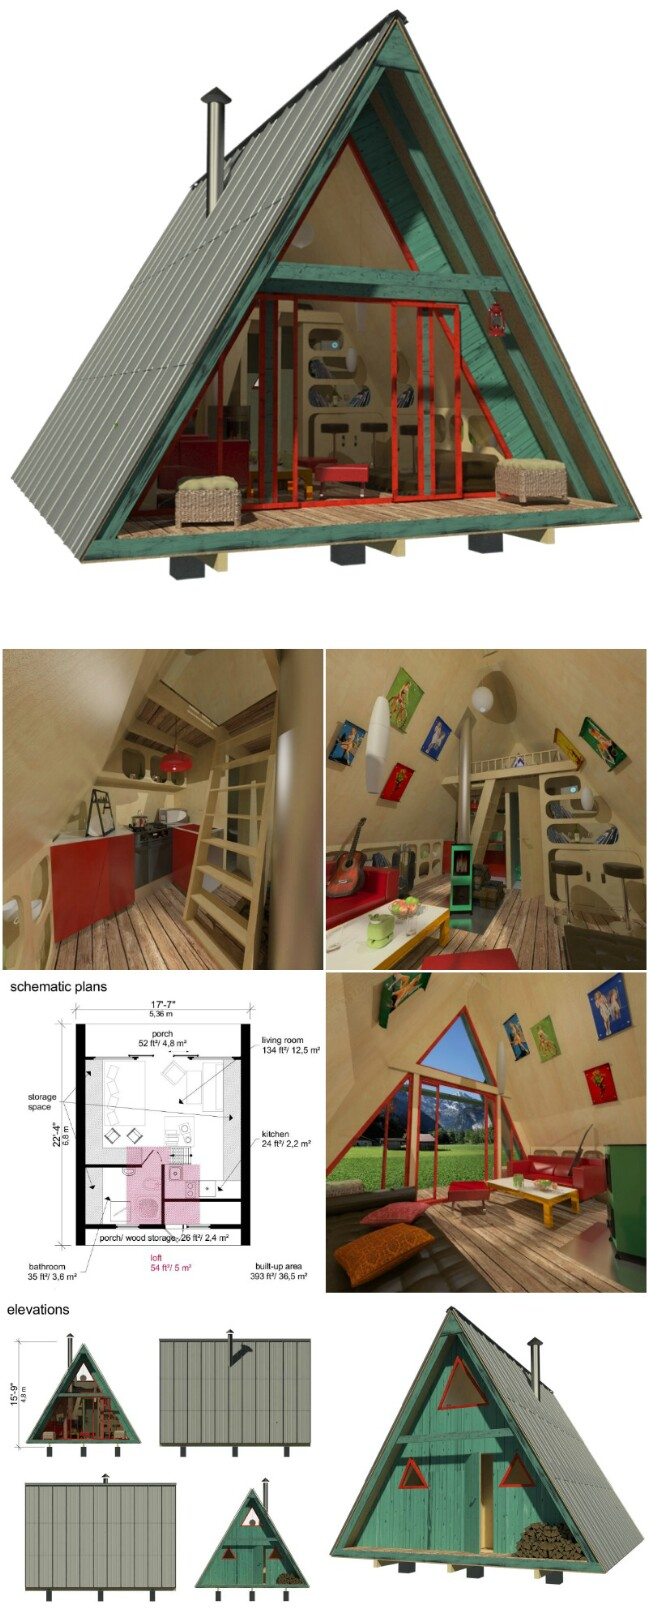 25 plans to build your own fully customized tiny house on for Small house plans cheap to build